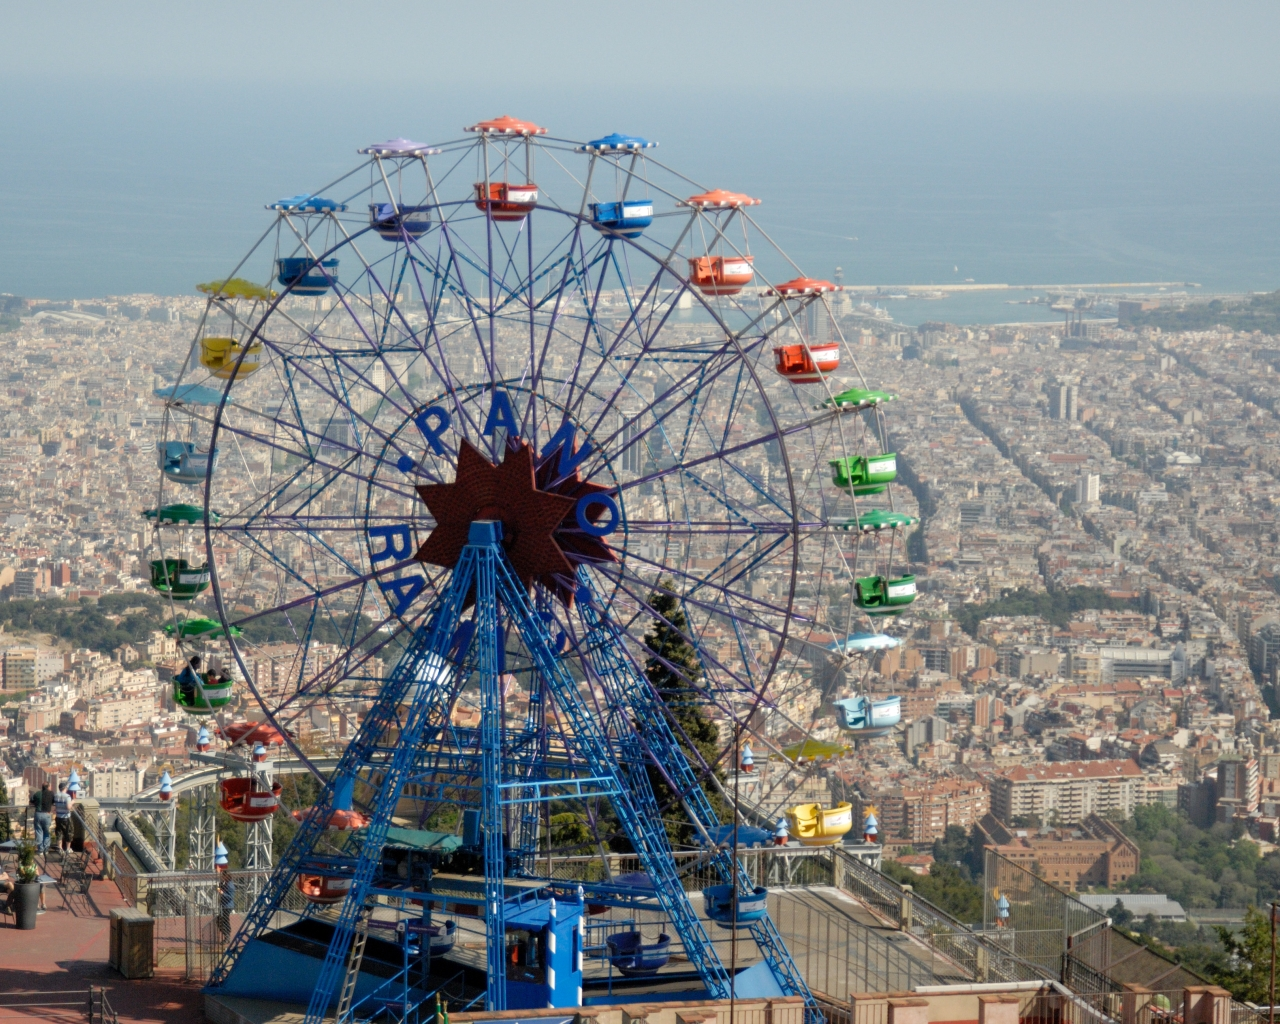 Tibidabo the mountain overlooking barcelona tips for for Parques de barcelona